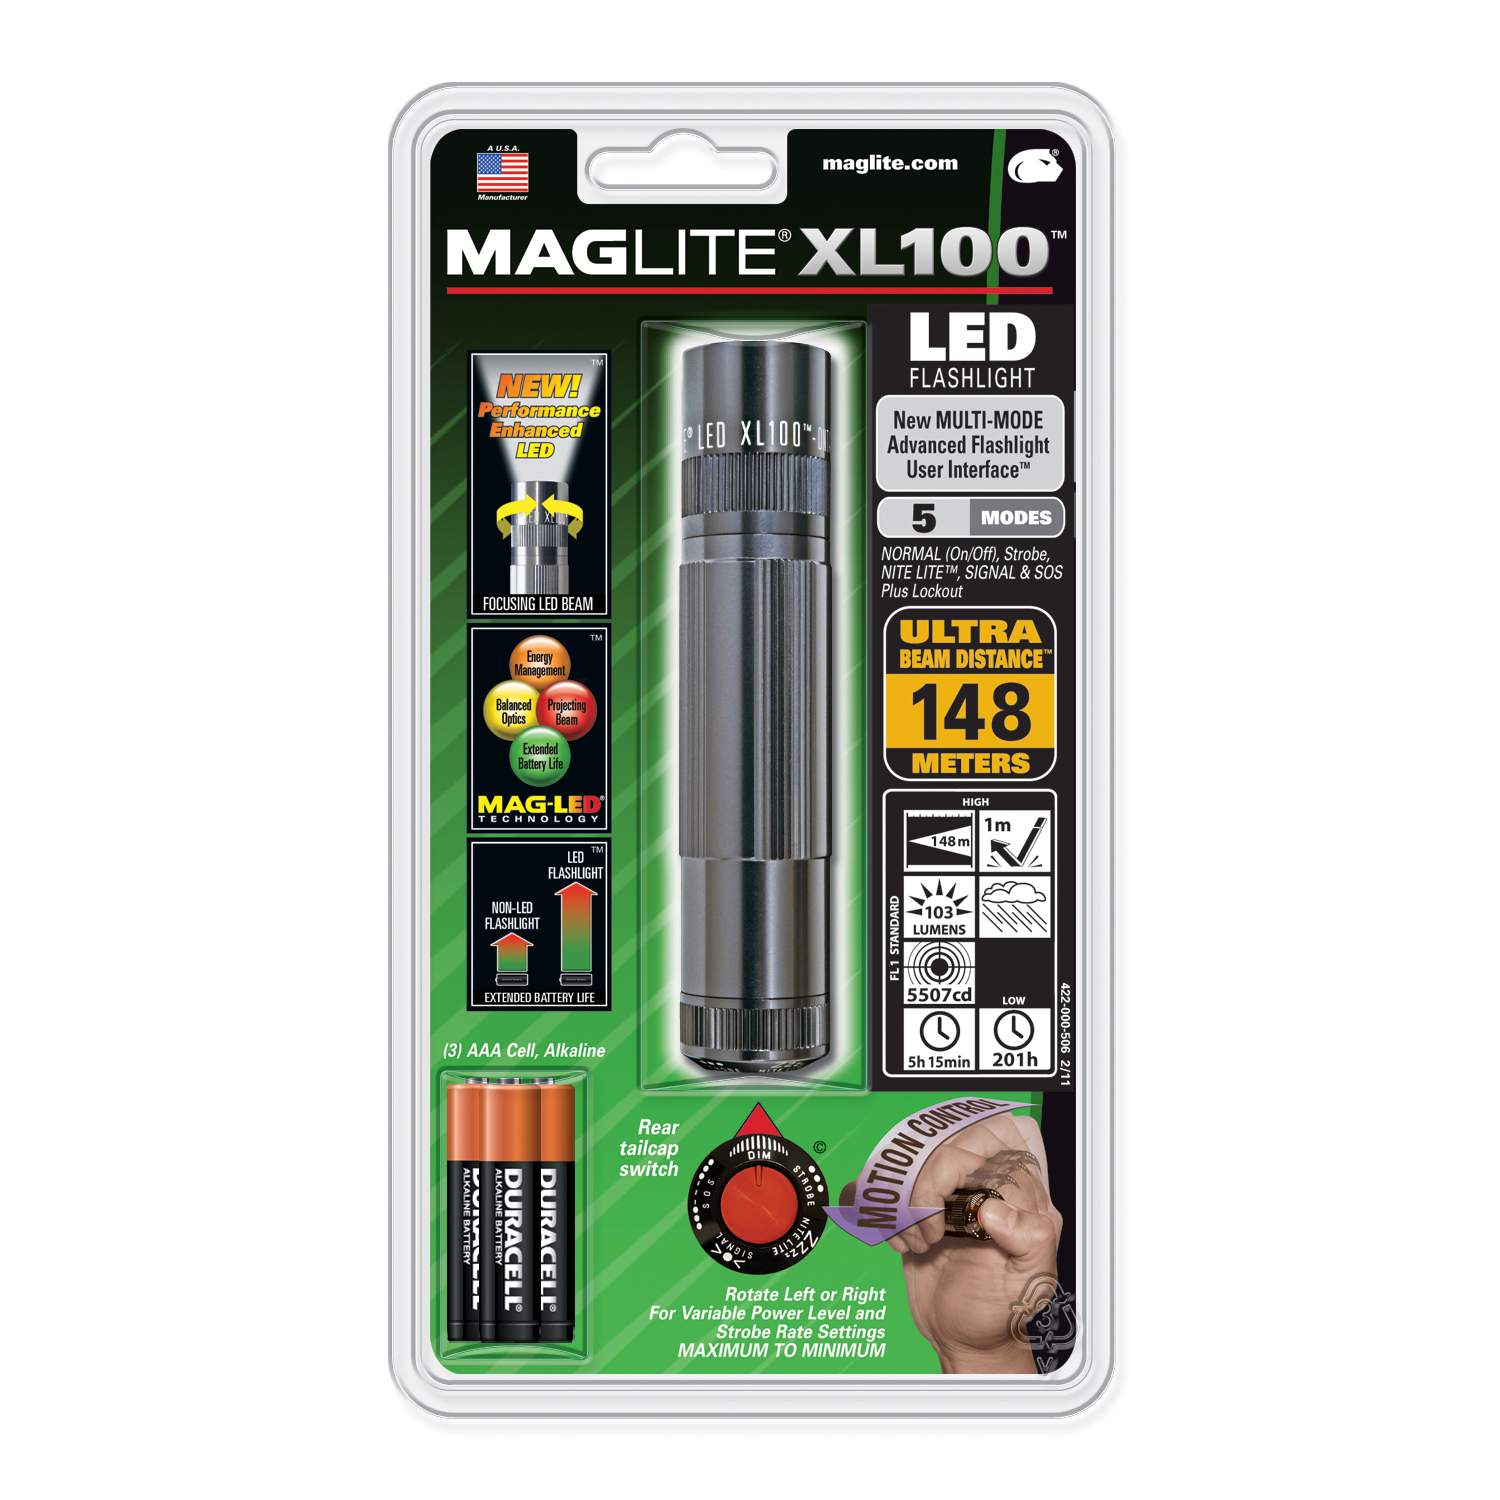 Maglite XL 100 LED High Power Flashlight  5 Modes- GRAY- XL100 S3096 at Sears.com